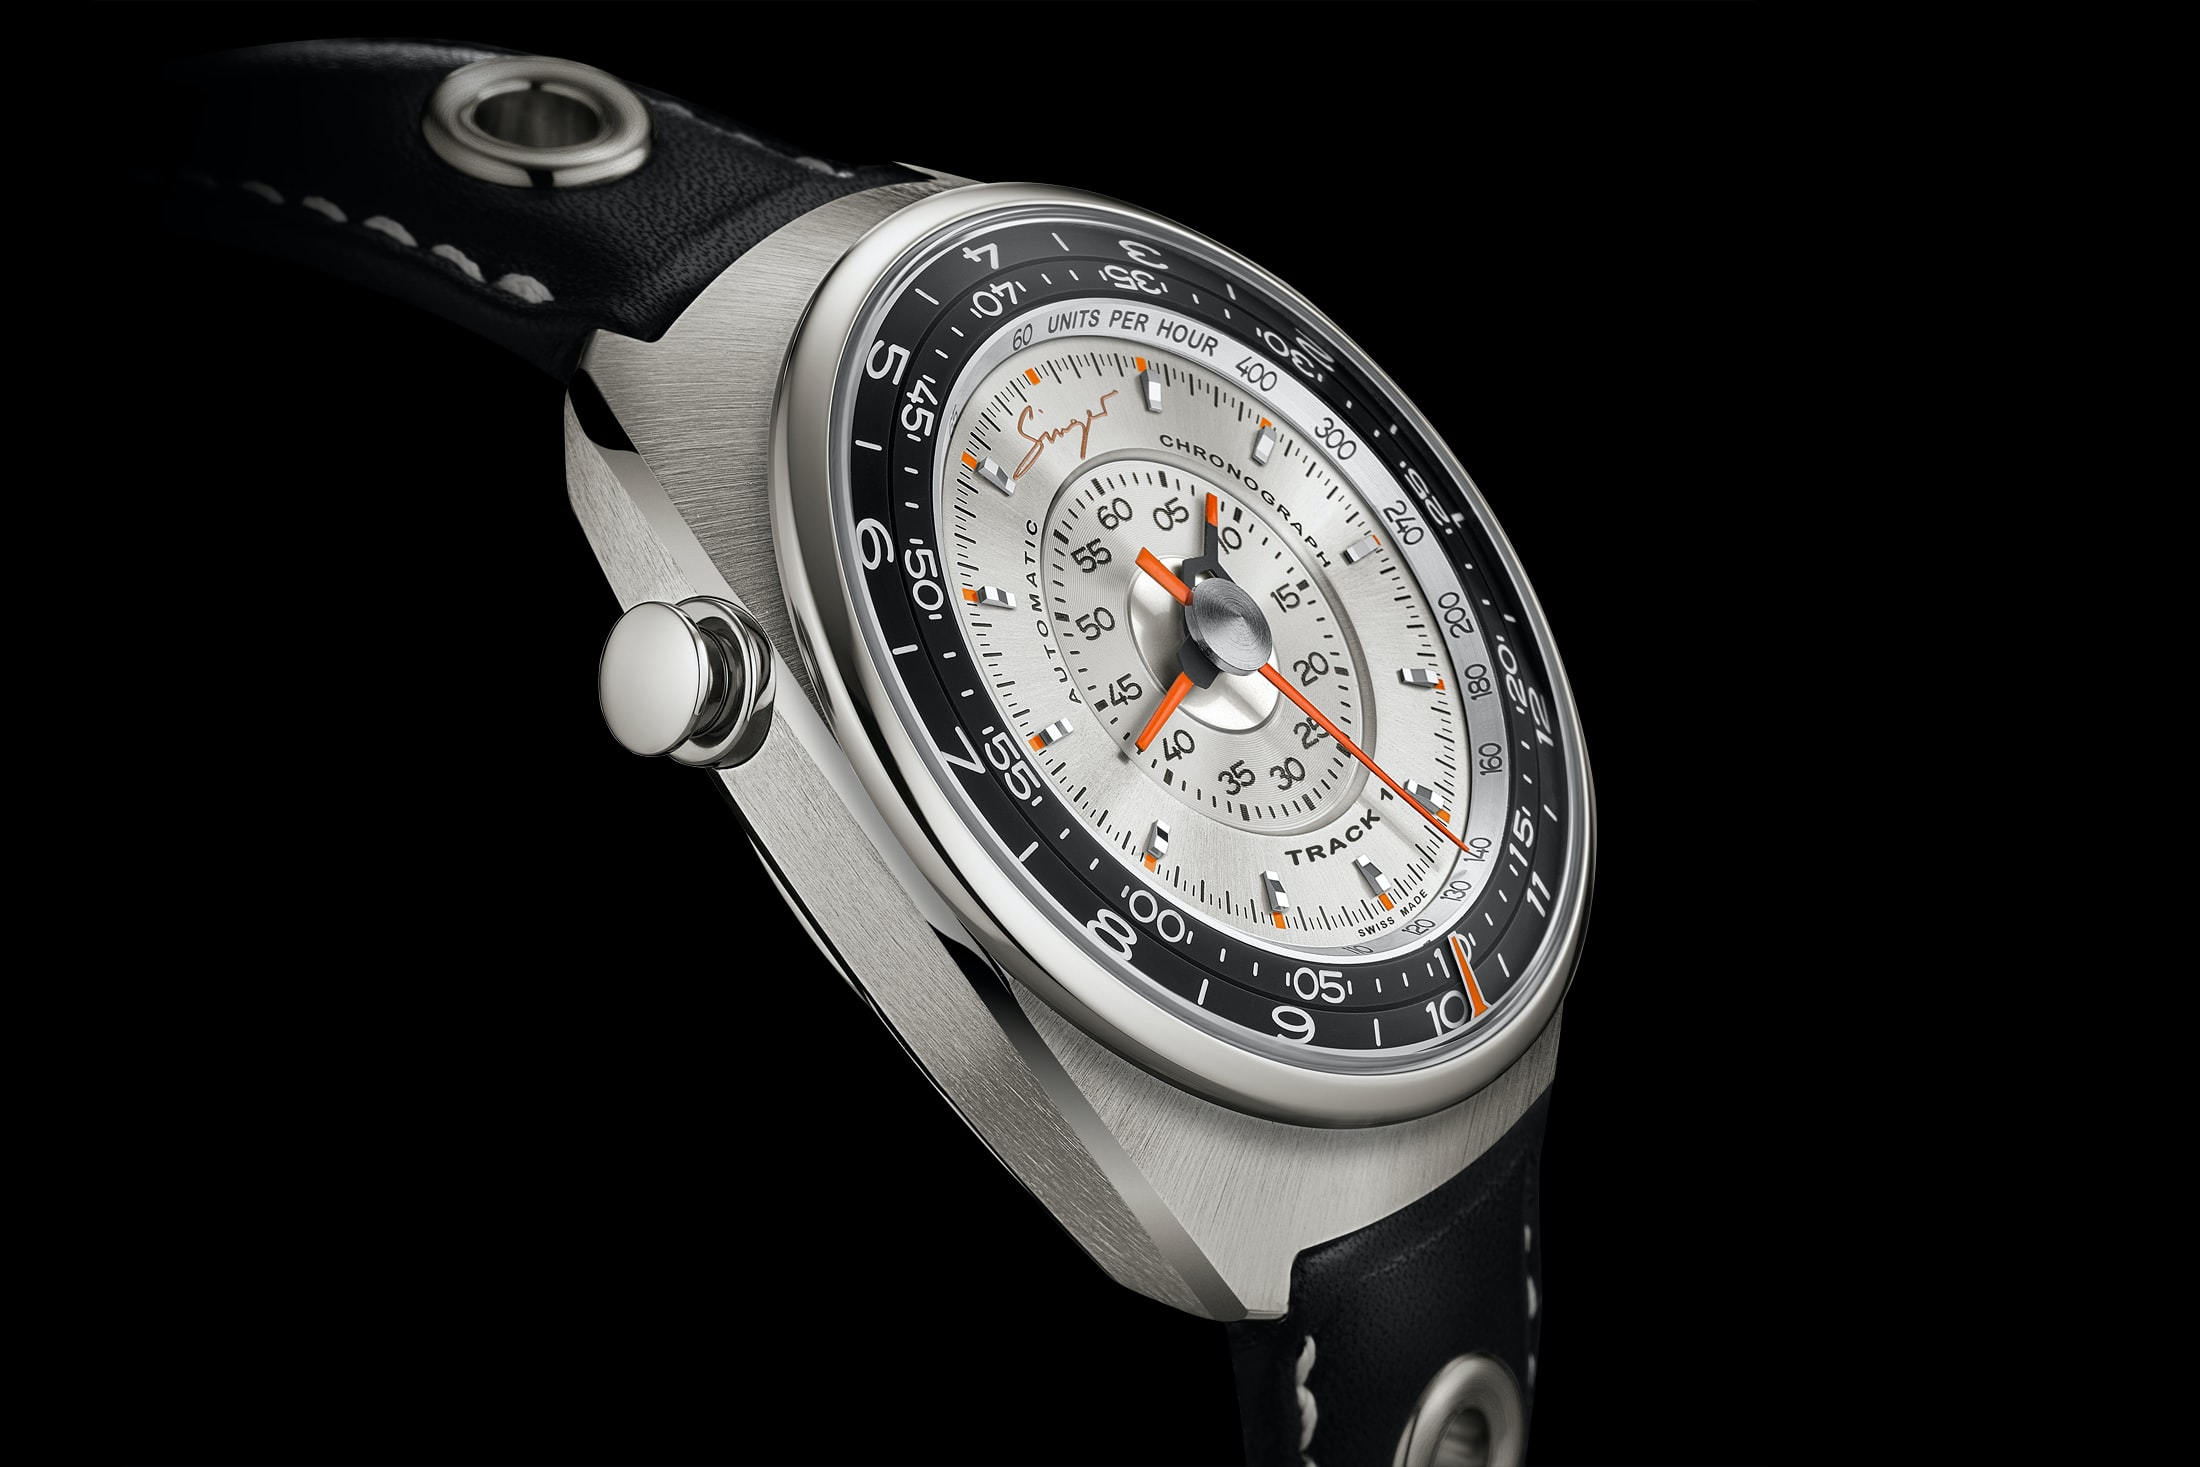 singer track1 chronograph Introducing: The Singer Track1 Chronograph, Featuring The AgenGraphe Caliber By Jean-Marc Wiederrecht Introducing: The Singer Track1 Chronograph, Featuring The AgenGraphe Caliber By Jean-Marc Wiederrecht singer 05